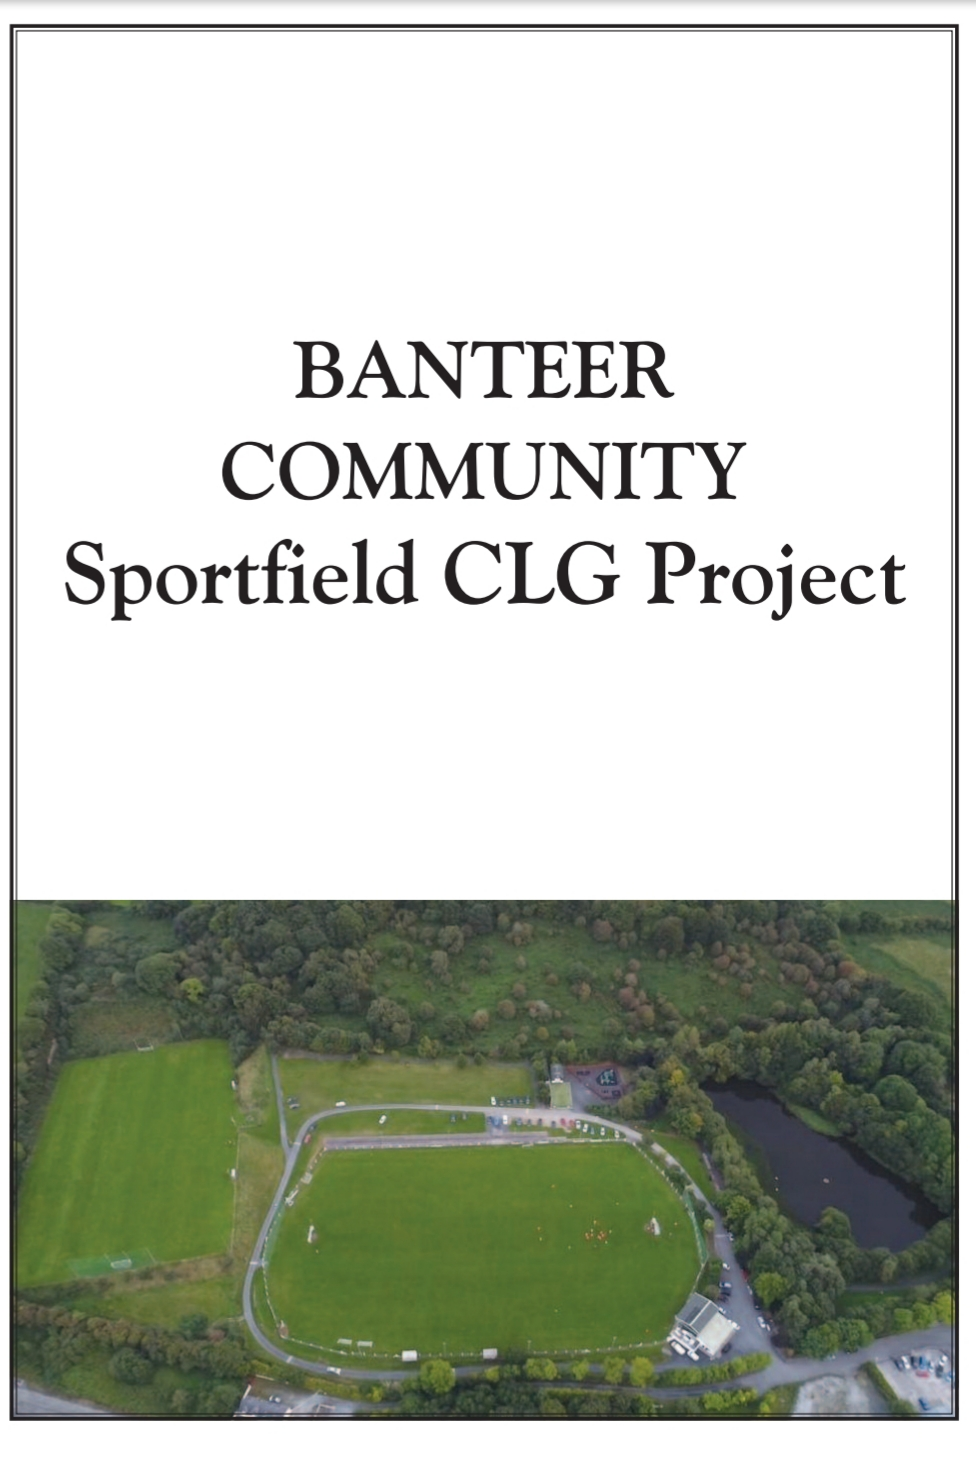 O'Shea confirms €1.1m in funding for New Astroturf and Associated Facilities at Banteer Community Sportsfield